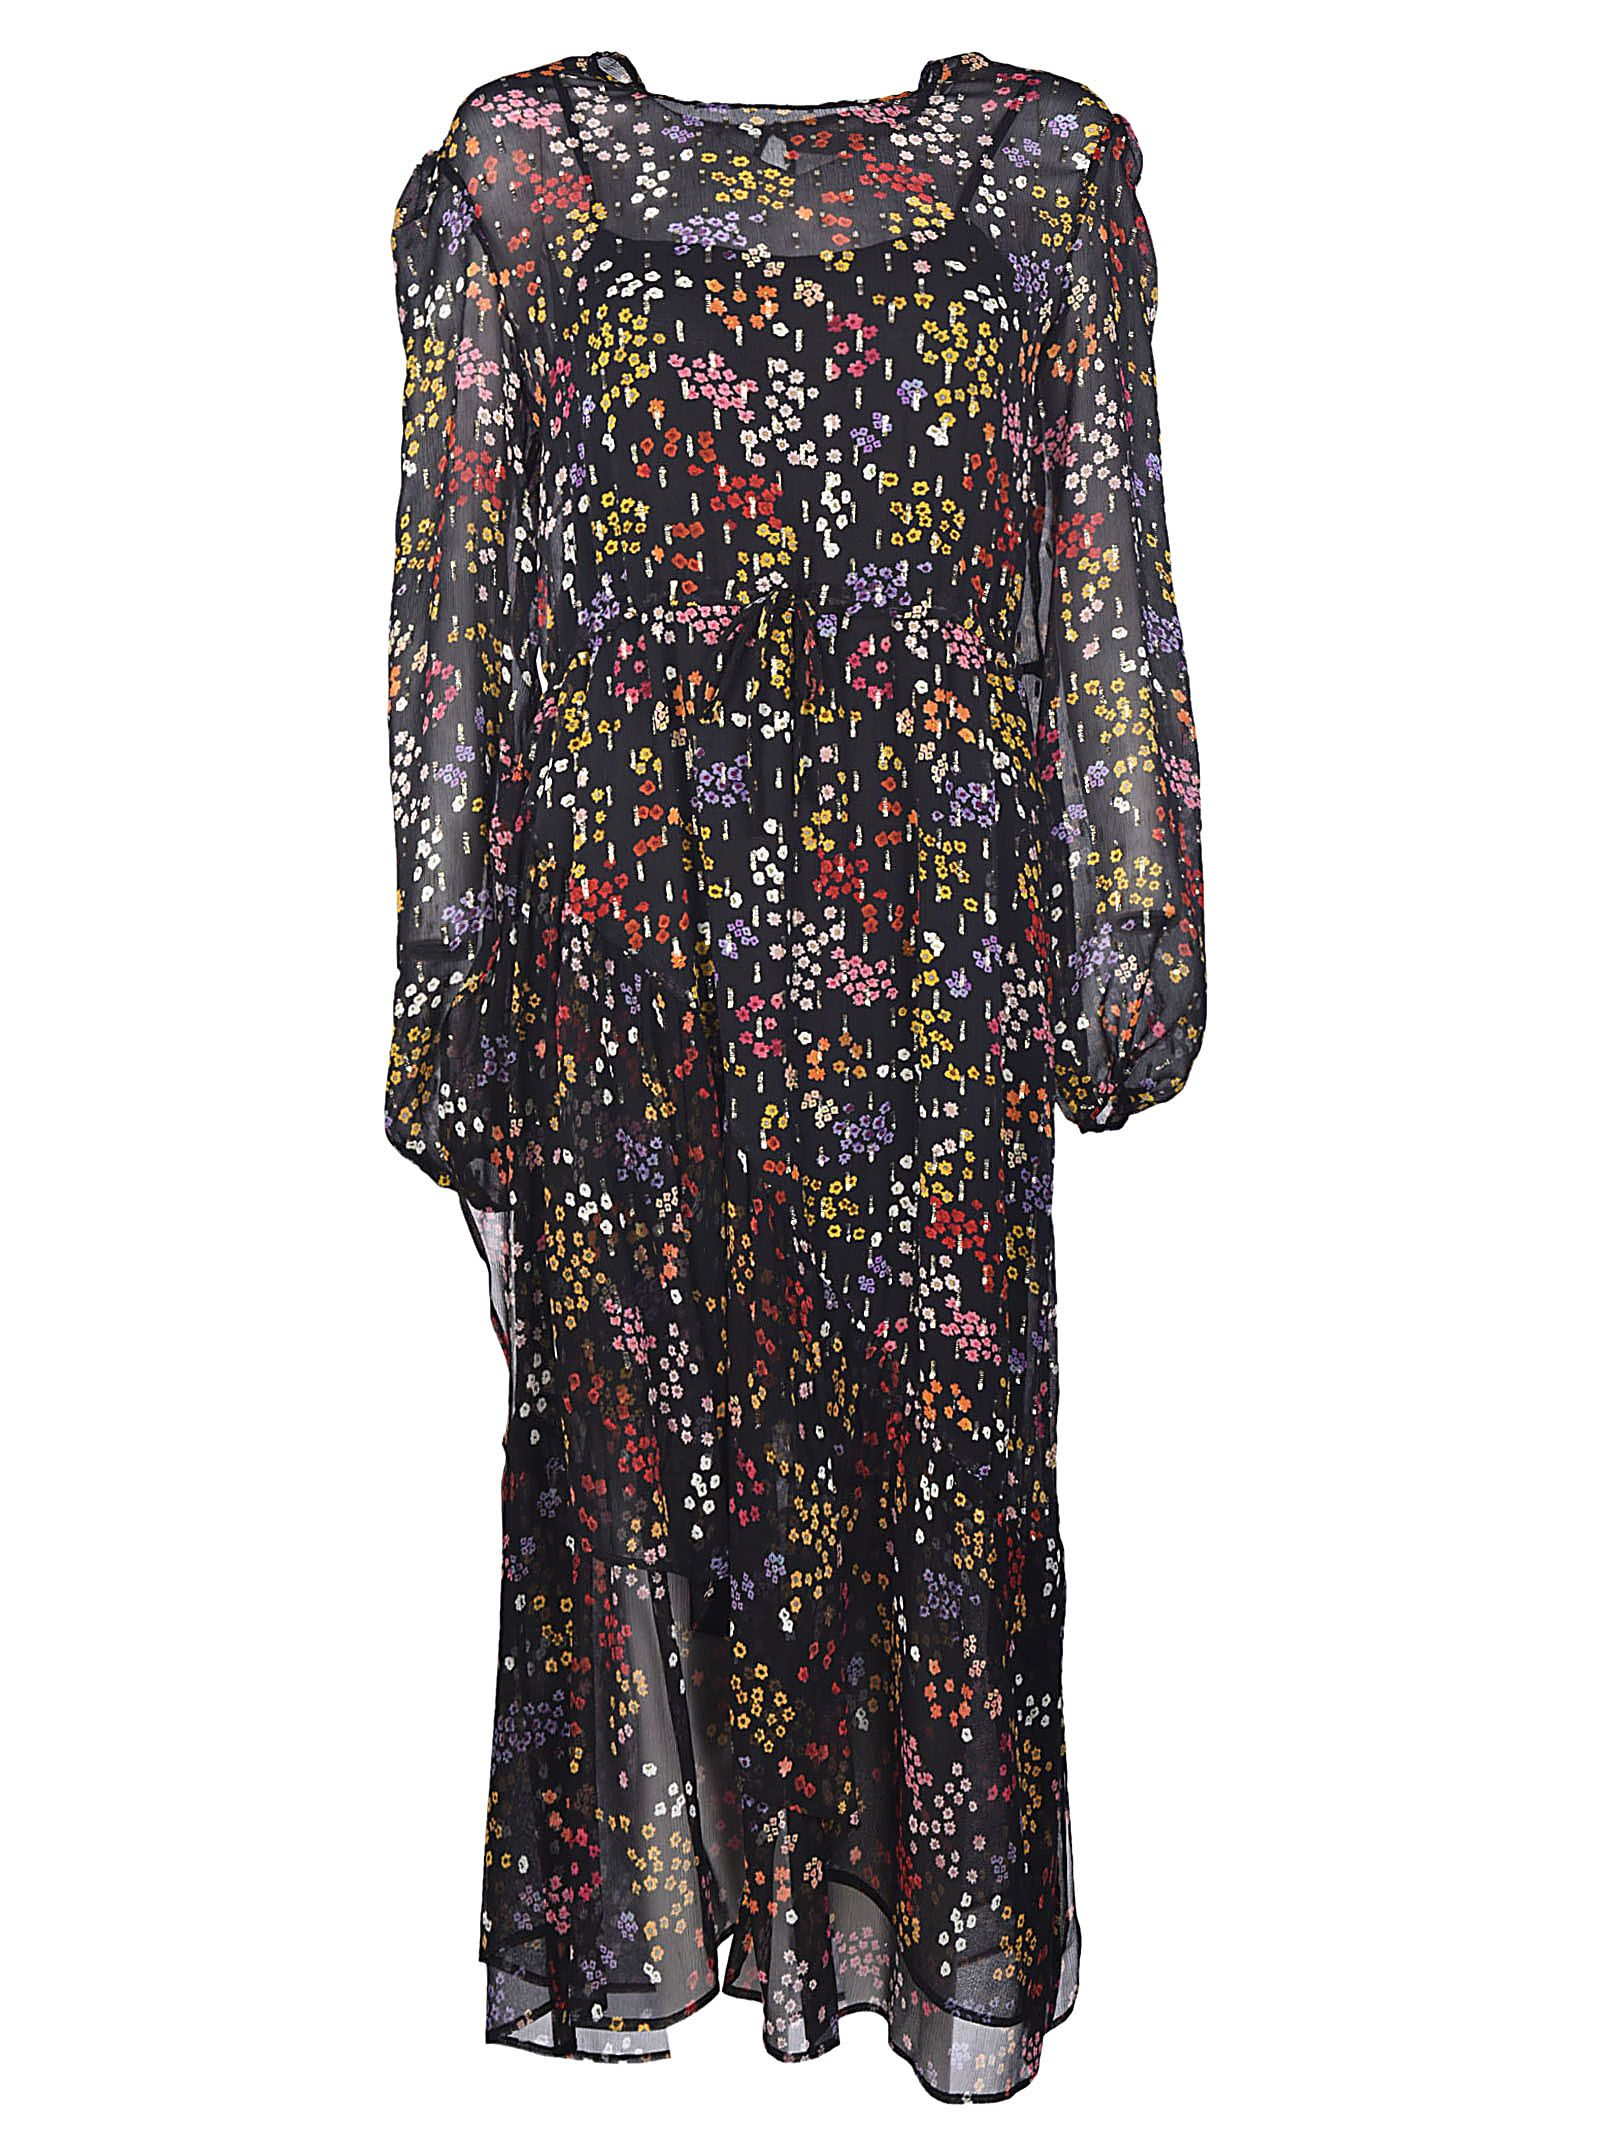 See By Chloé Sheer Floral Midi Dress